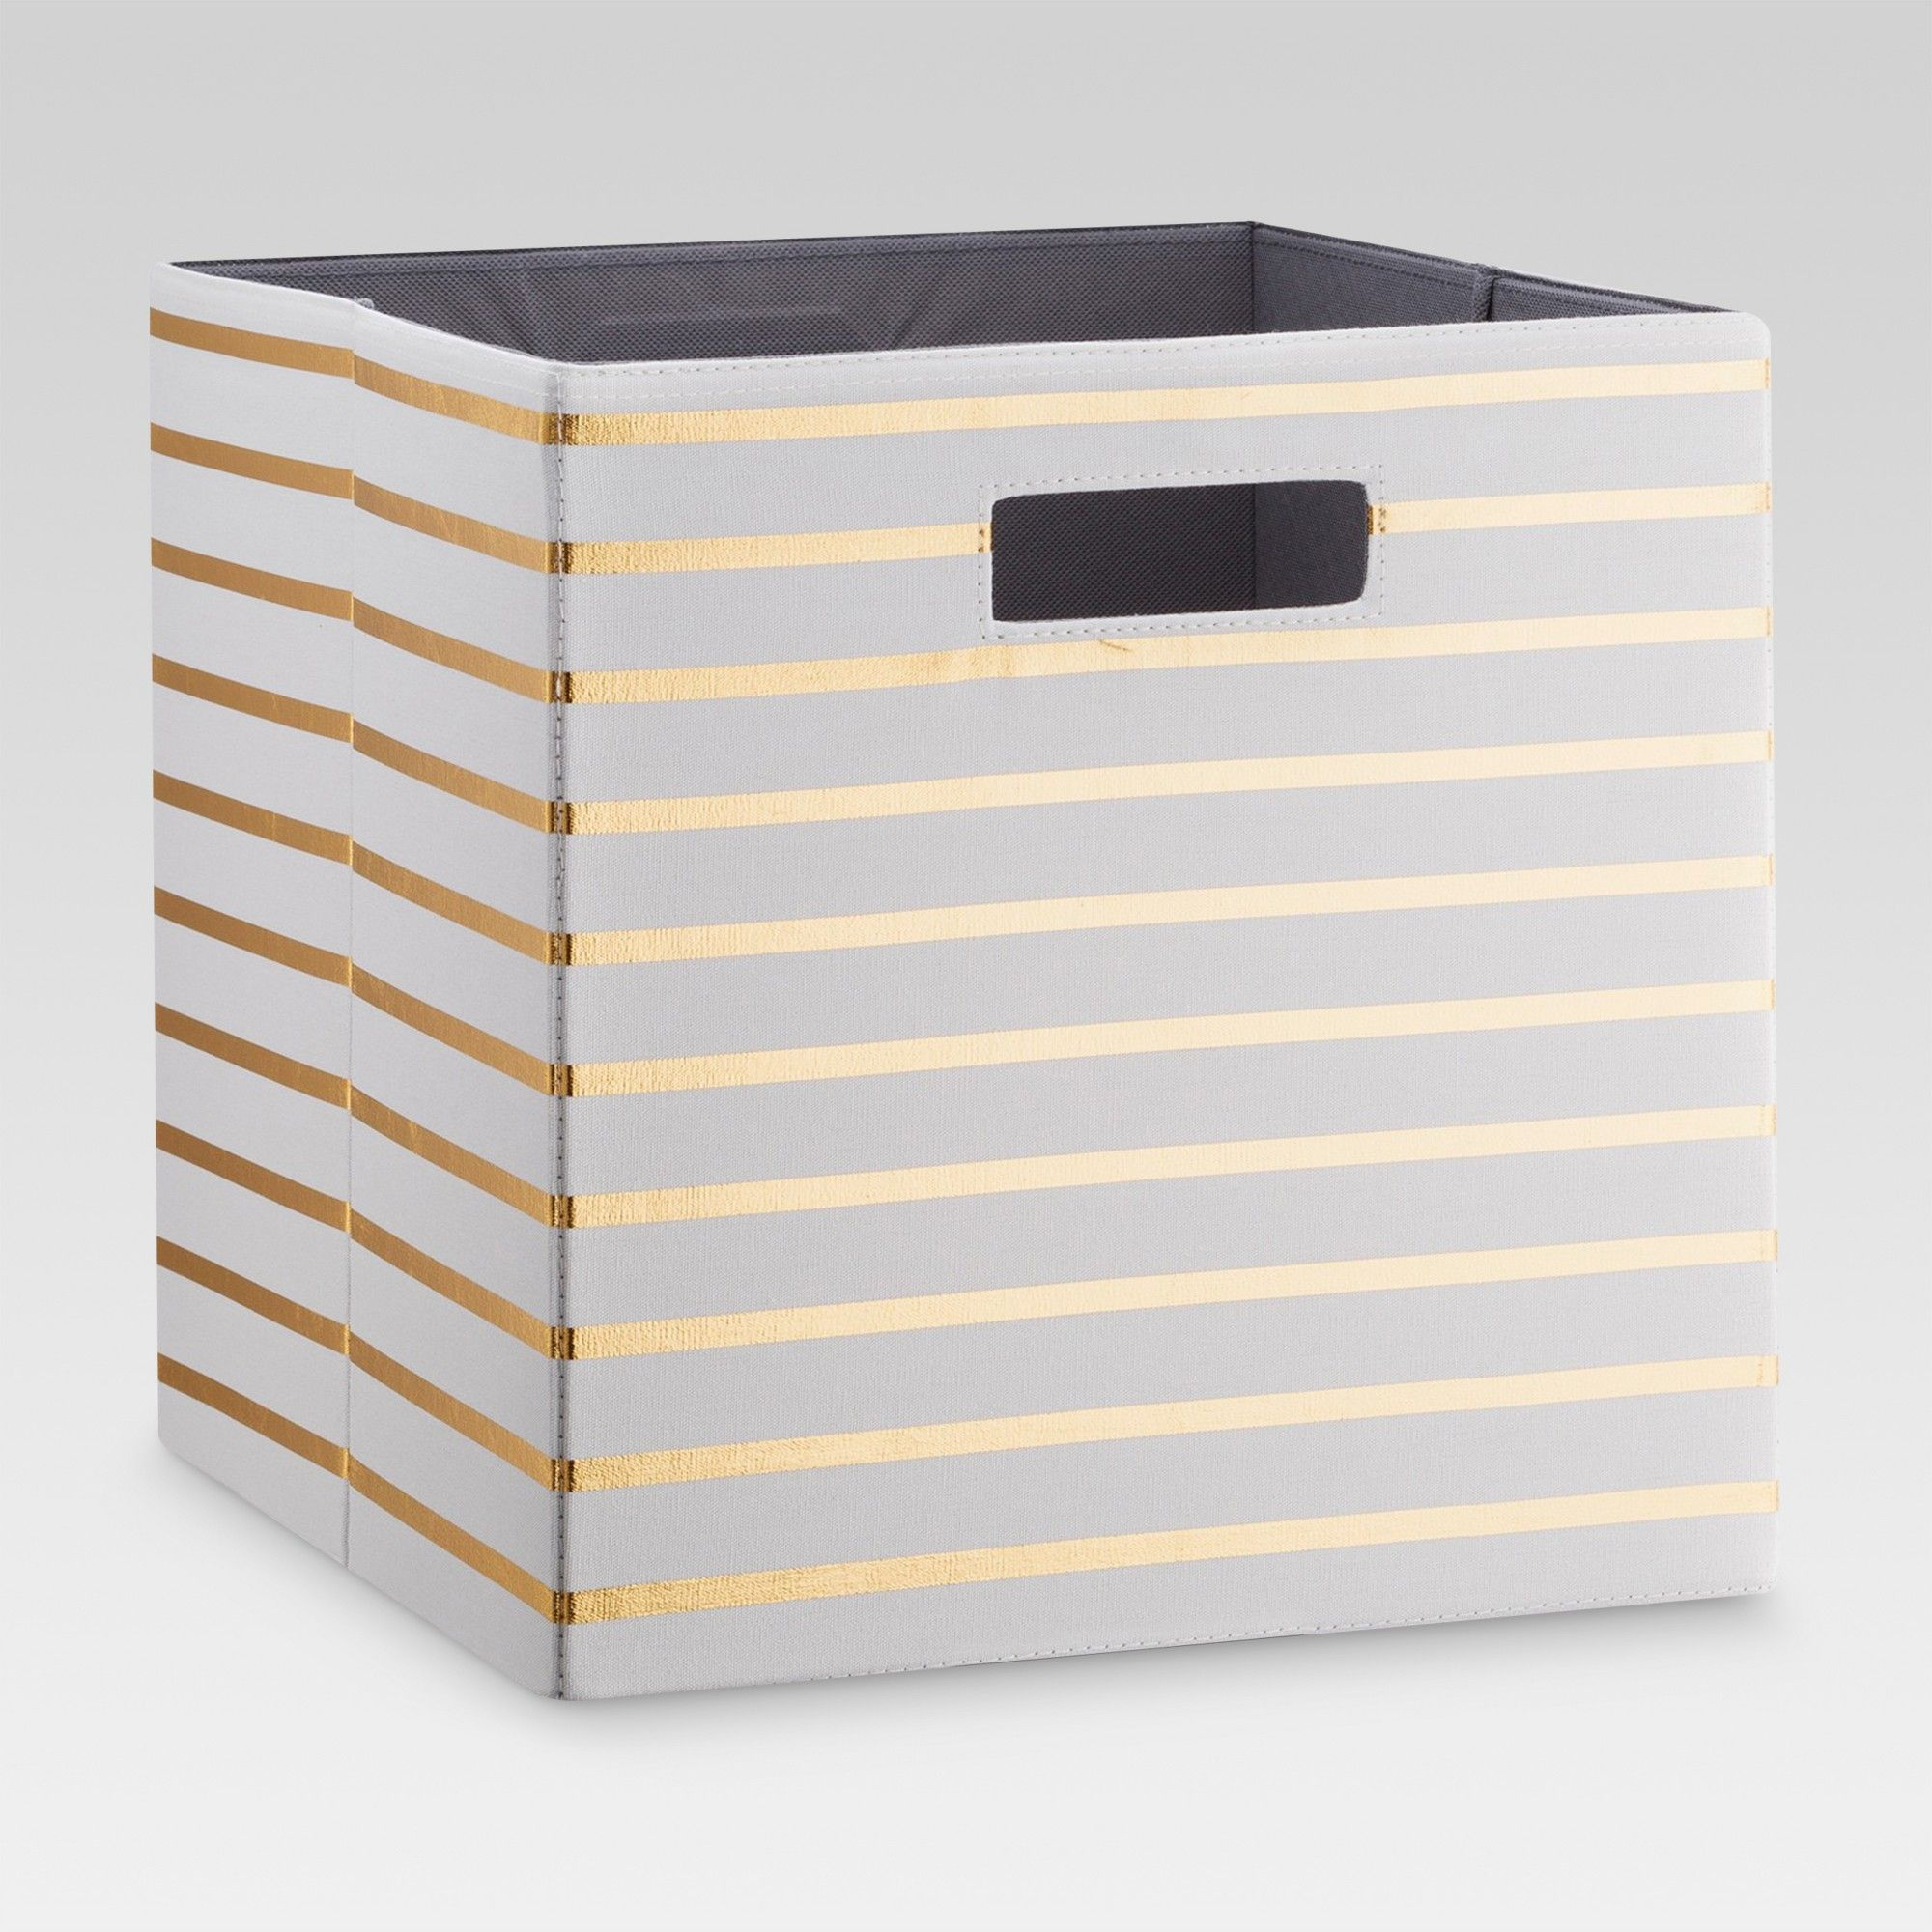 13 Fabric Cube Storage Bin White Gold Stripe Threshold Fabric Storage Bins Cube Storage Cube Storage Bins